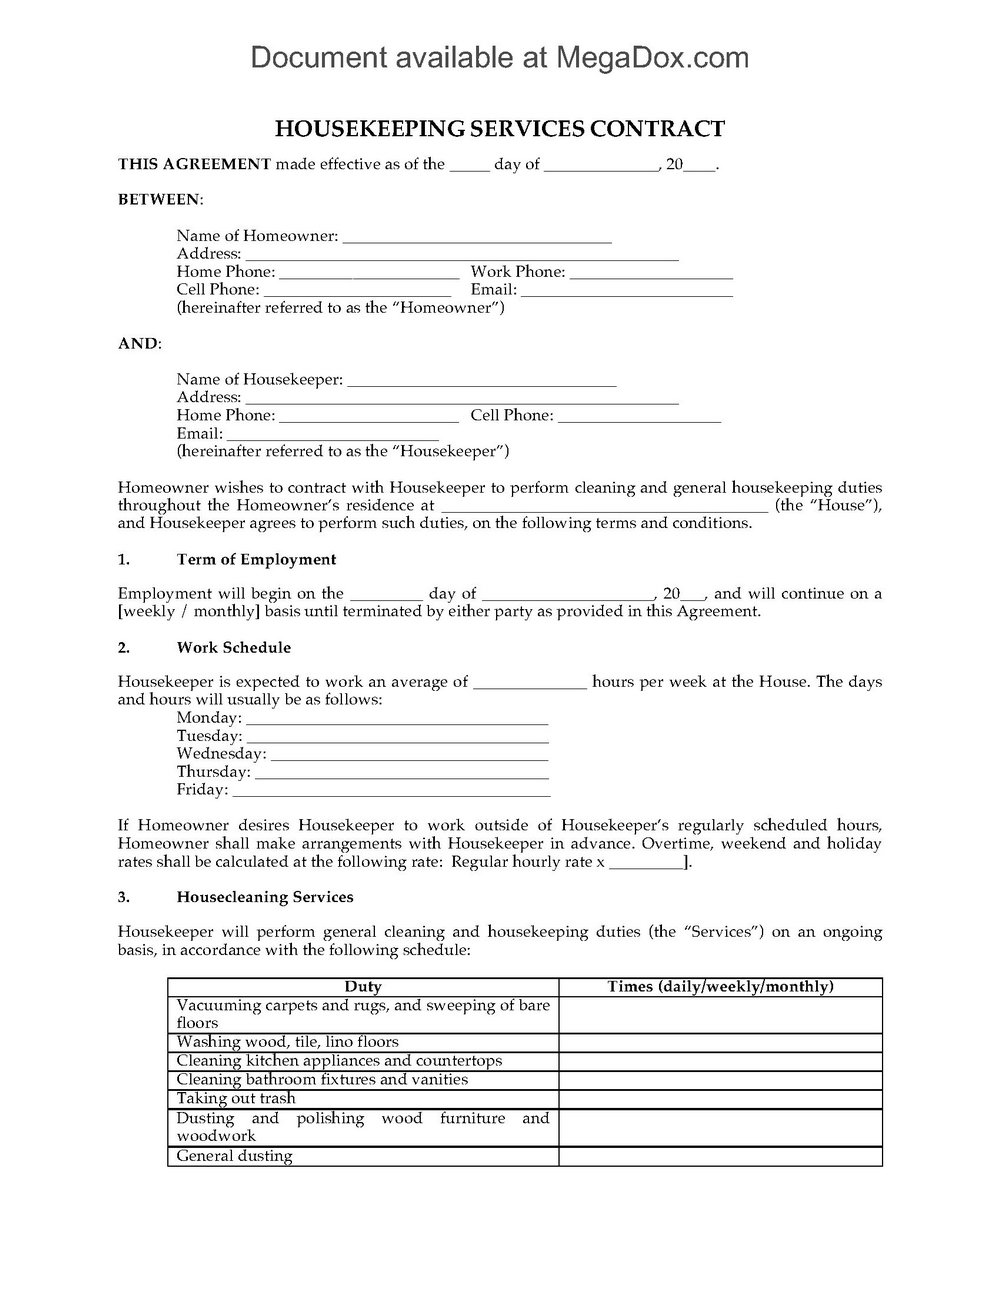 Workers Compensation Waiver Form For Independent Contractors California